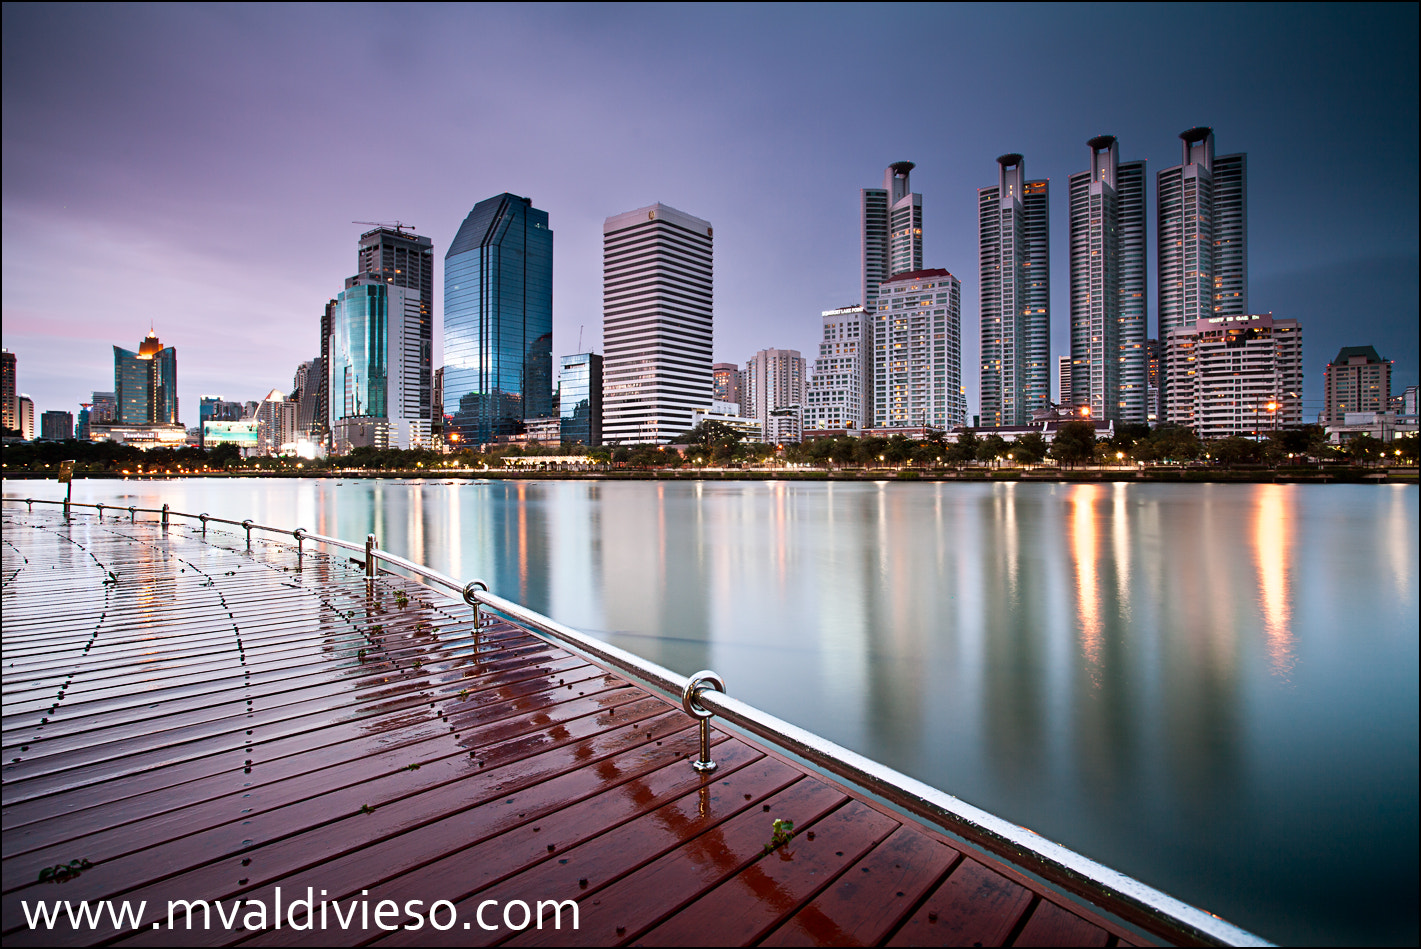 Photograph The condominium by miguel valdivieso on 500px